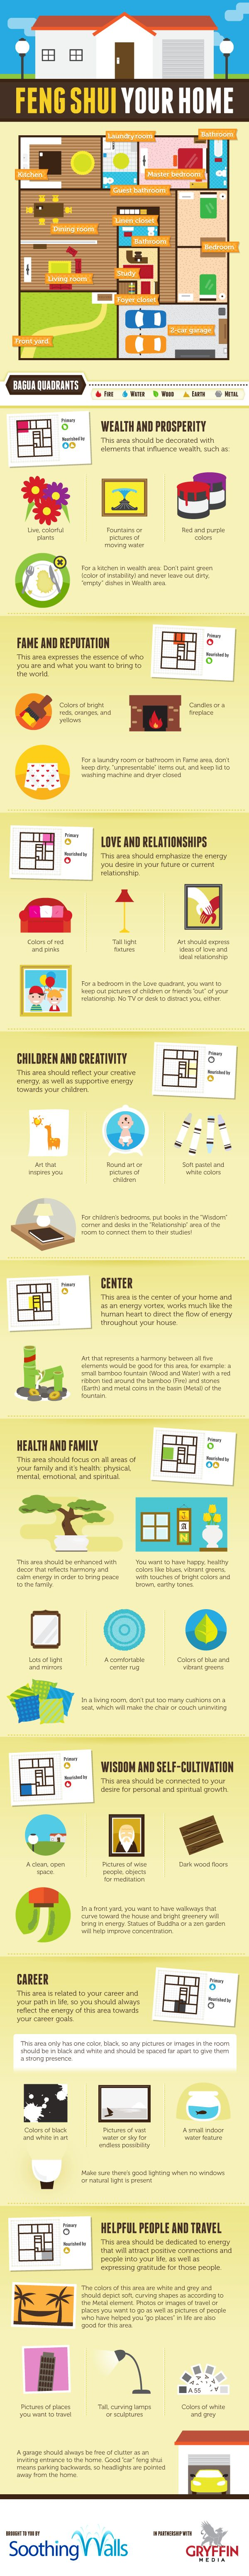 90 best Feng Shui in the Home images on Pinterest | Feng shui rules ...